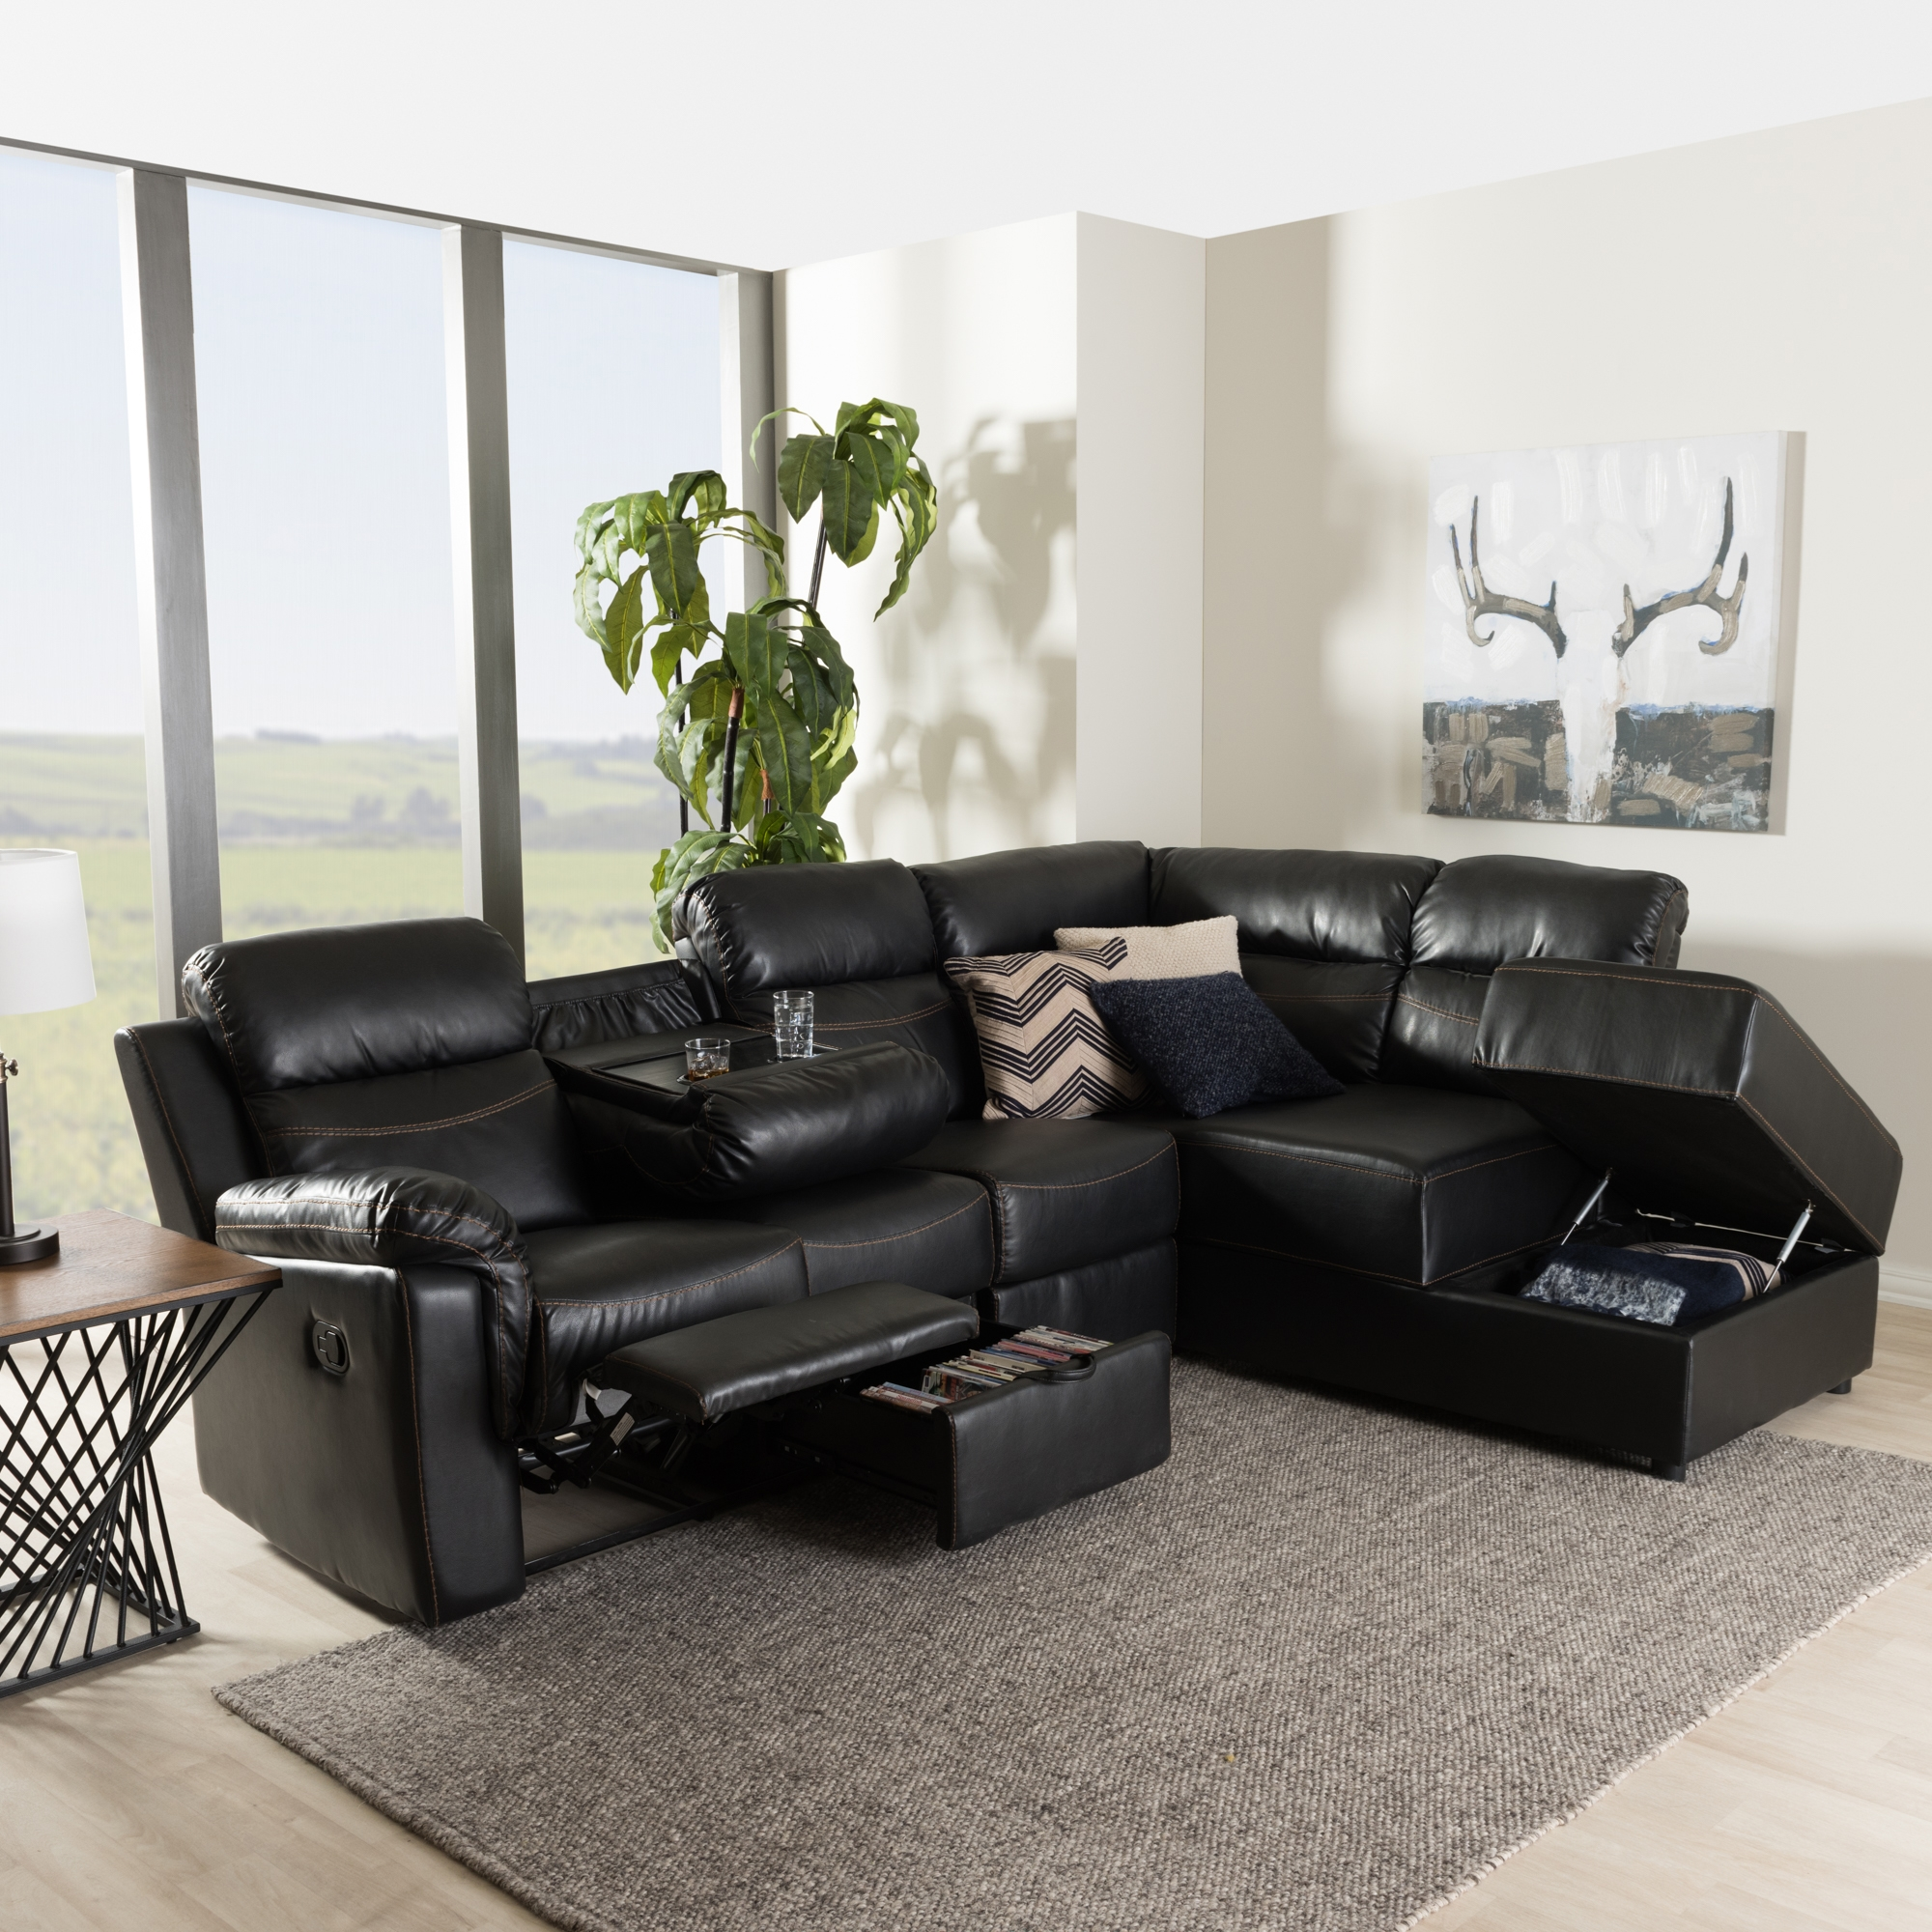 ... Baxton Studio Roland Modern and Contemporary Black Faux Leather 2-Piece Sectional with Recliner and ... & Baxton Studio Roland Modern and Contemporary Black Faux Leather 2 ... islam-shia.org